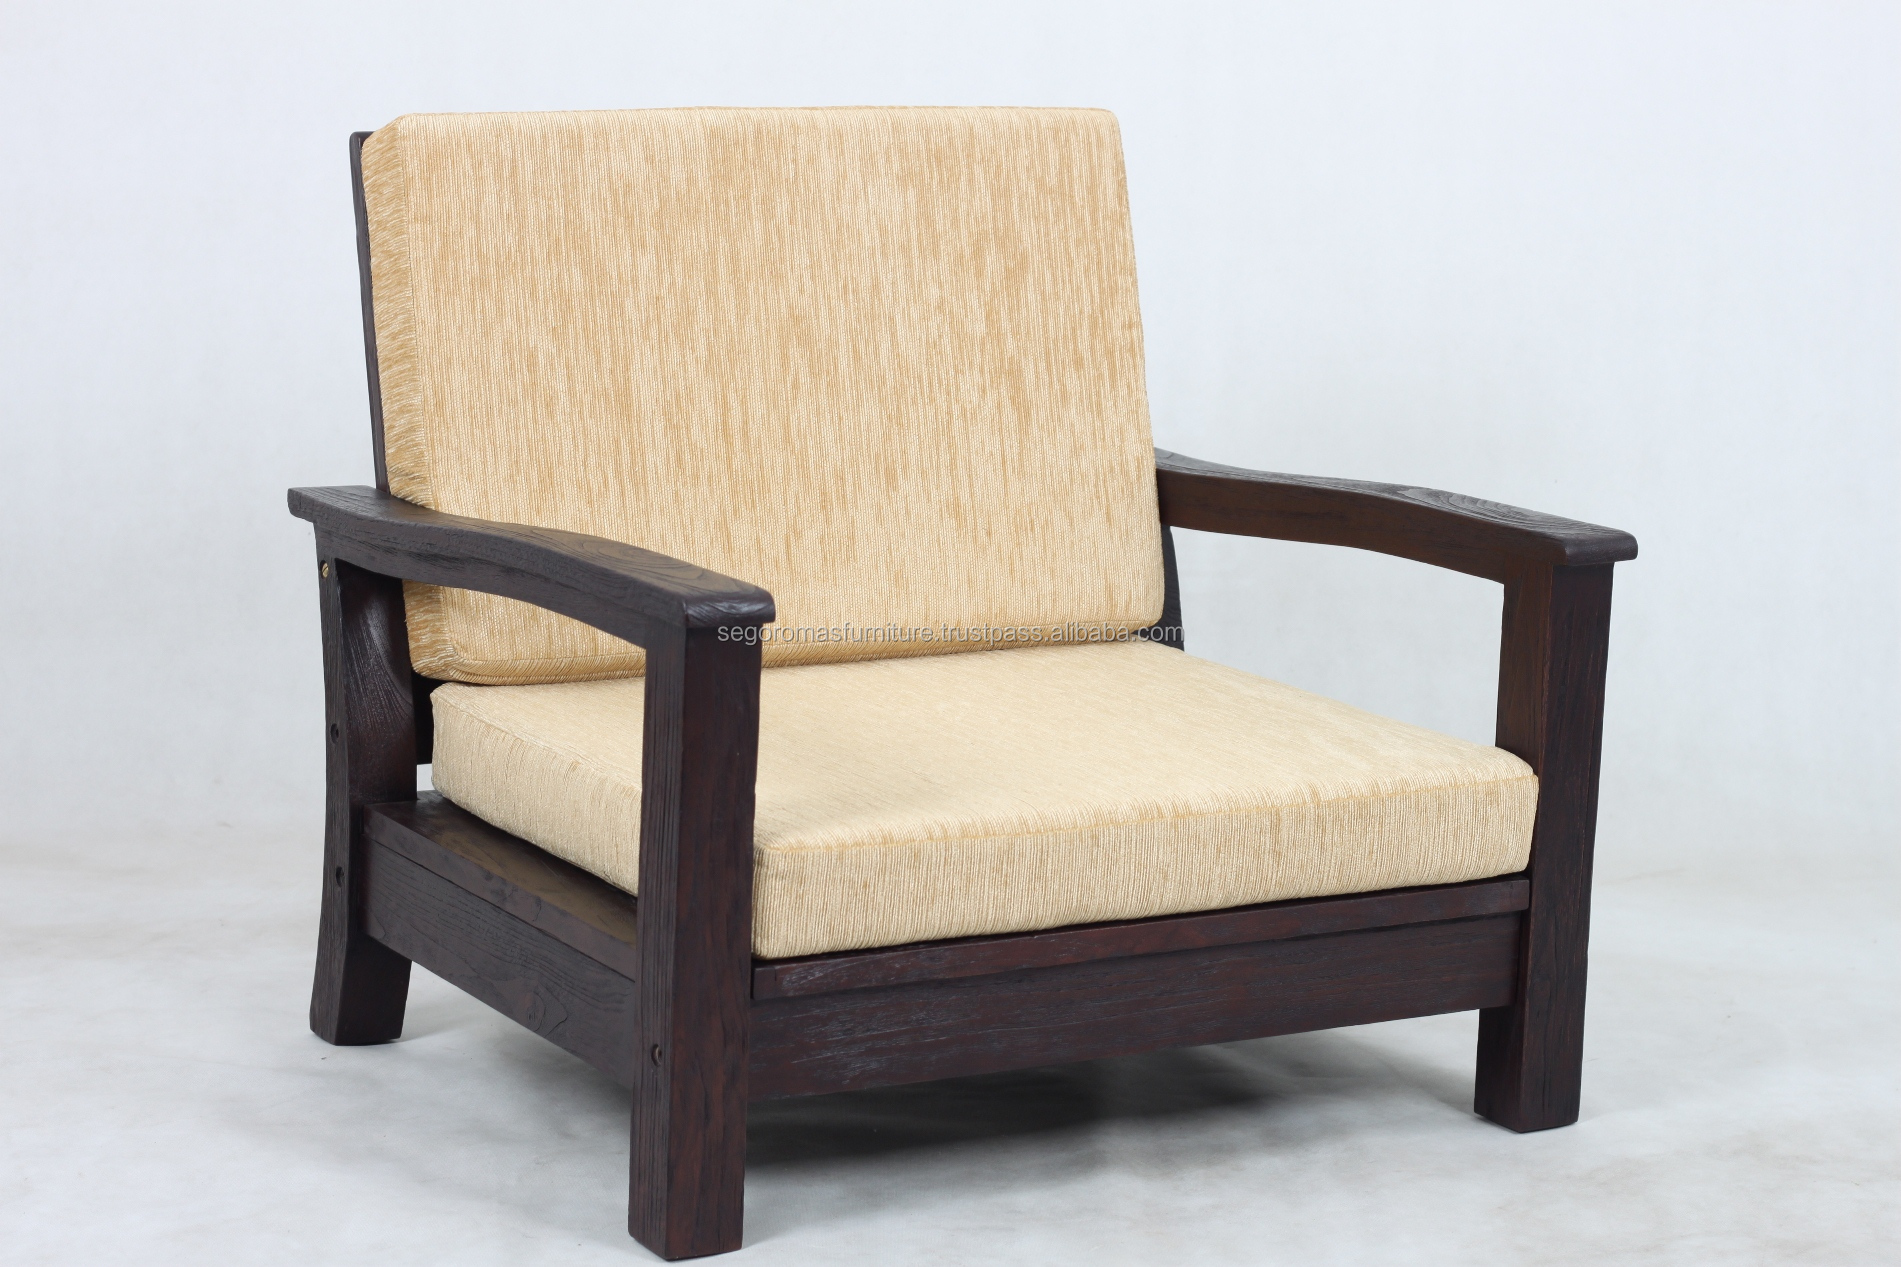 TEAK WOOD SOFA FRAME -ONE SEATER